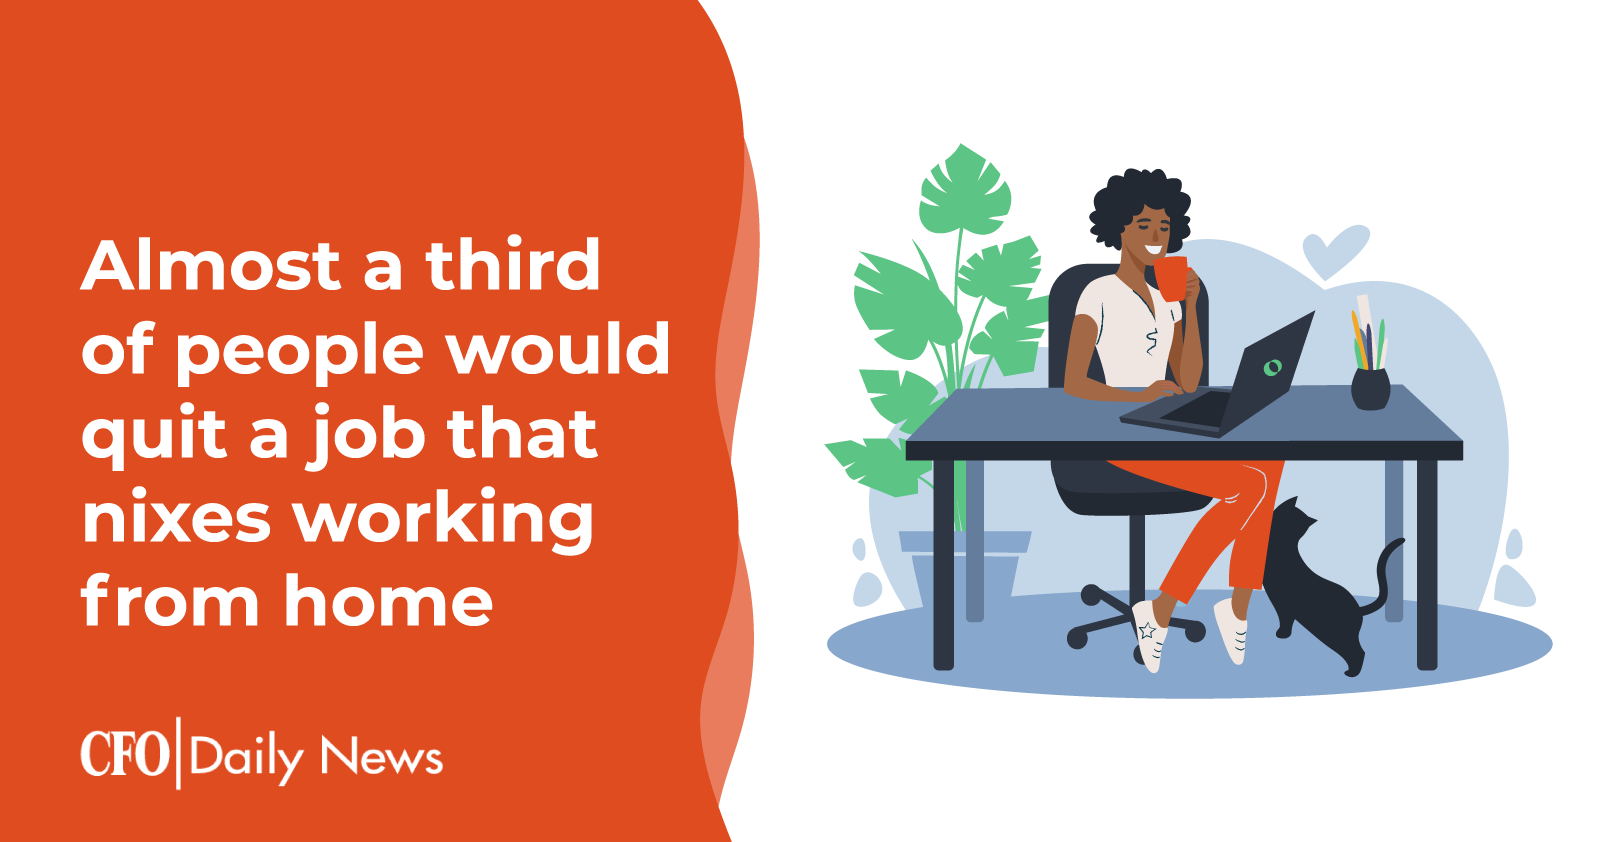 almost a third of people would quit a job that nixes working from home